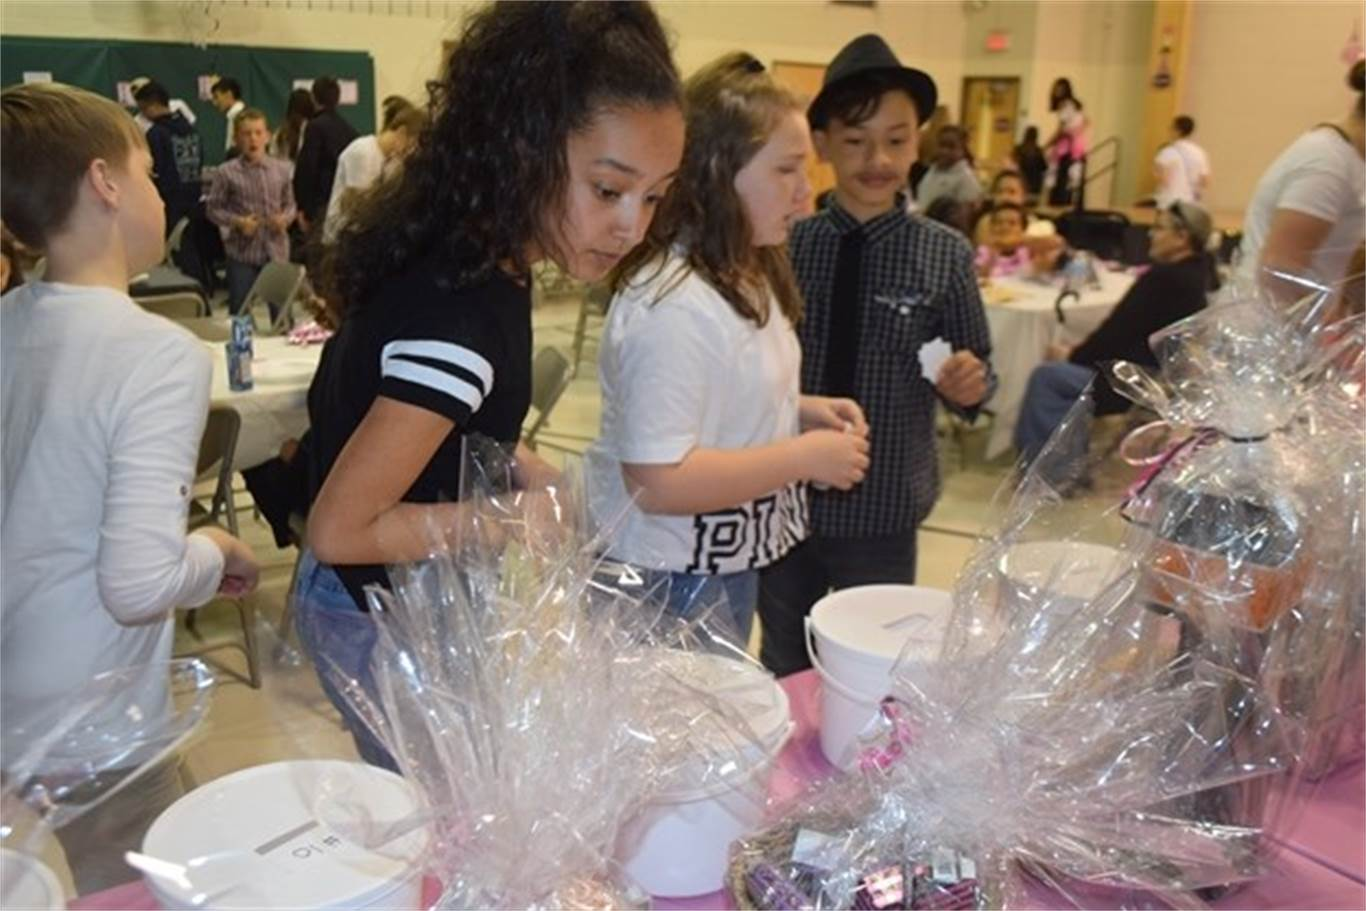 Grade 6 student Lauren Paredes, middle, looks at a few of the many raffle prizes up for grabs at St. Luke Catholic Elementary School's A day in Paris event on May 8. Photo by Laura Lennie, Stoney Creek News